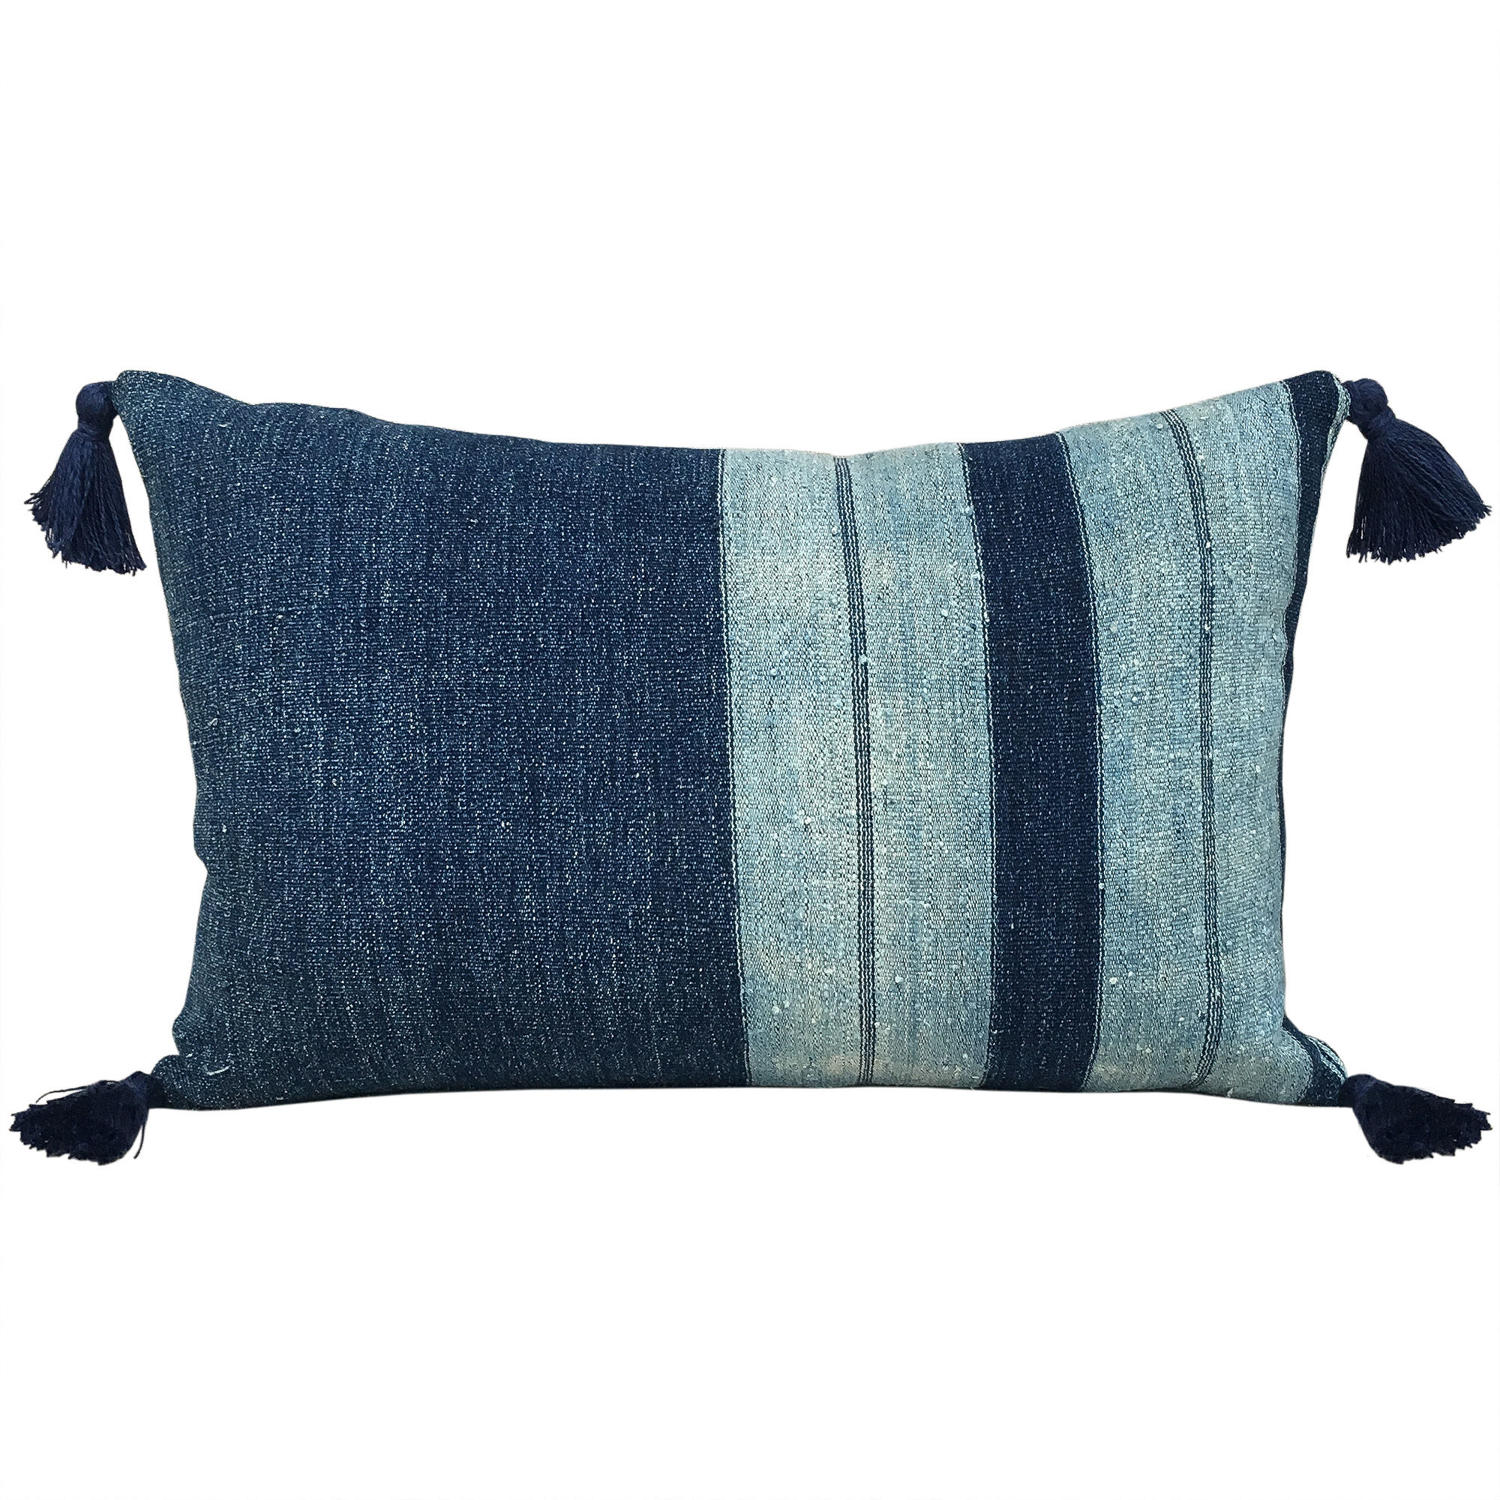 Indigo Igarra Cushions with Tassels